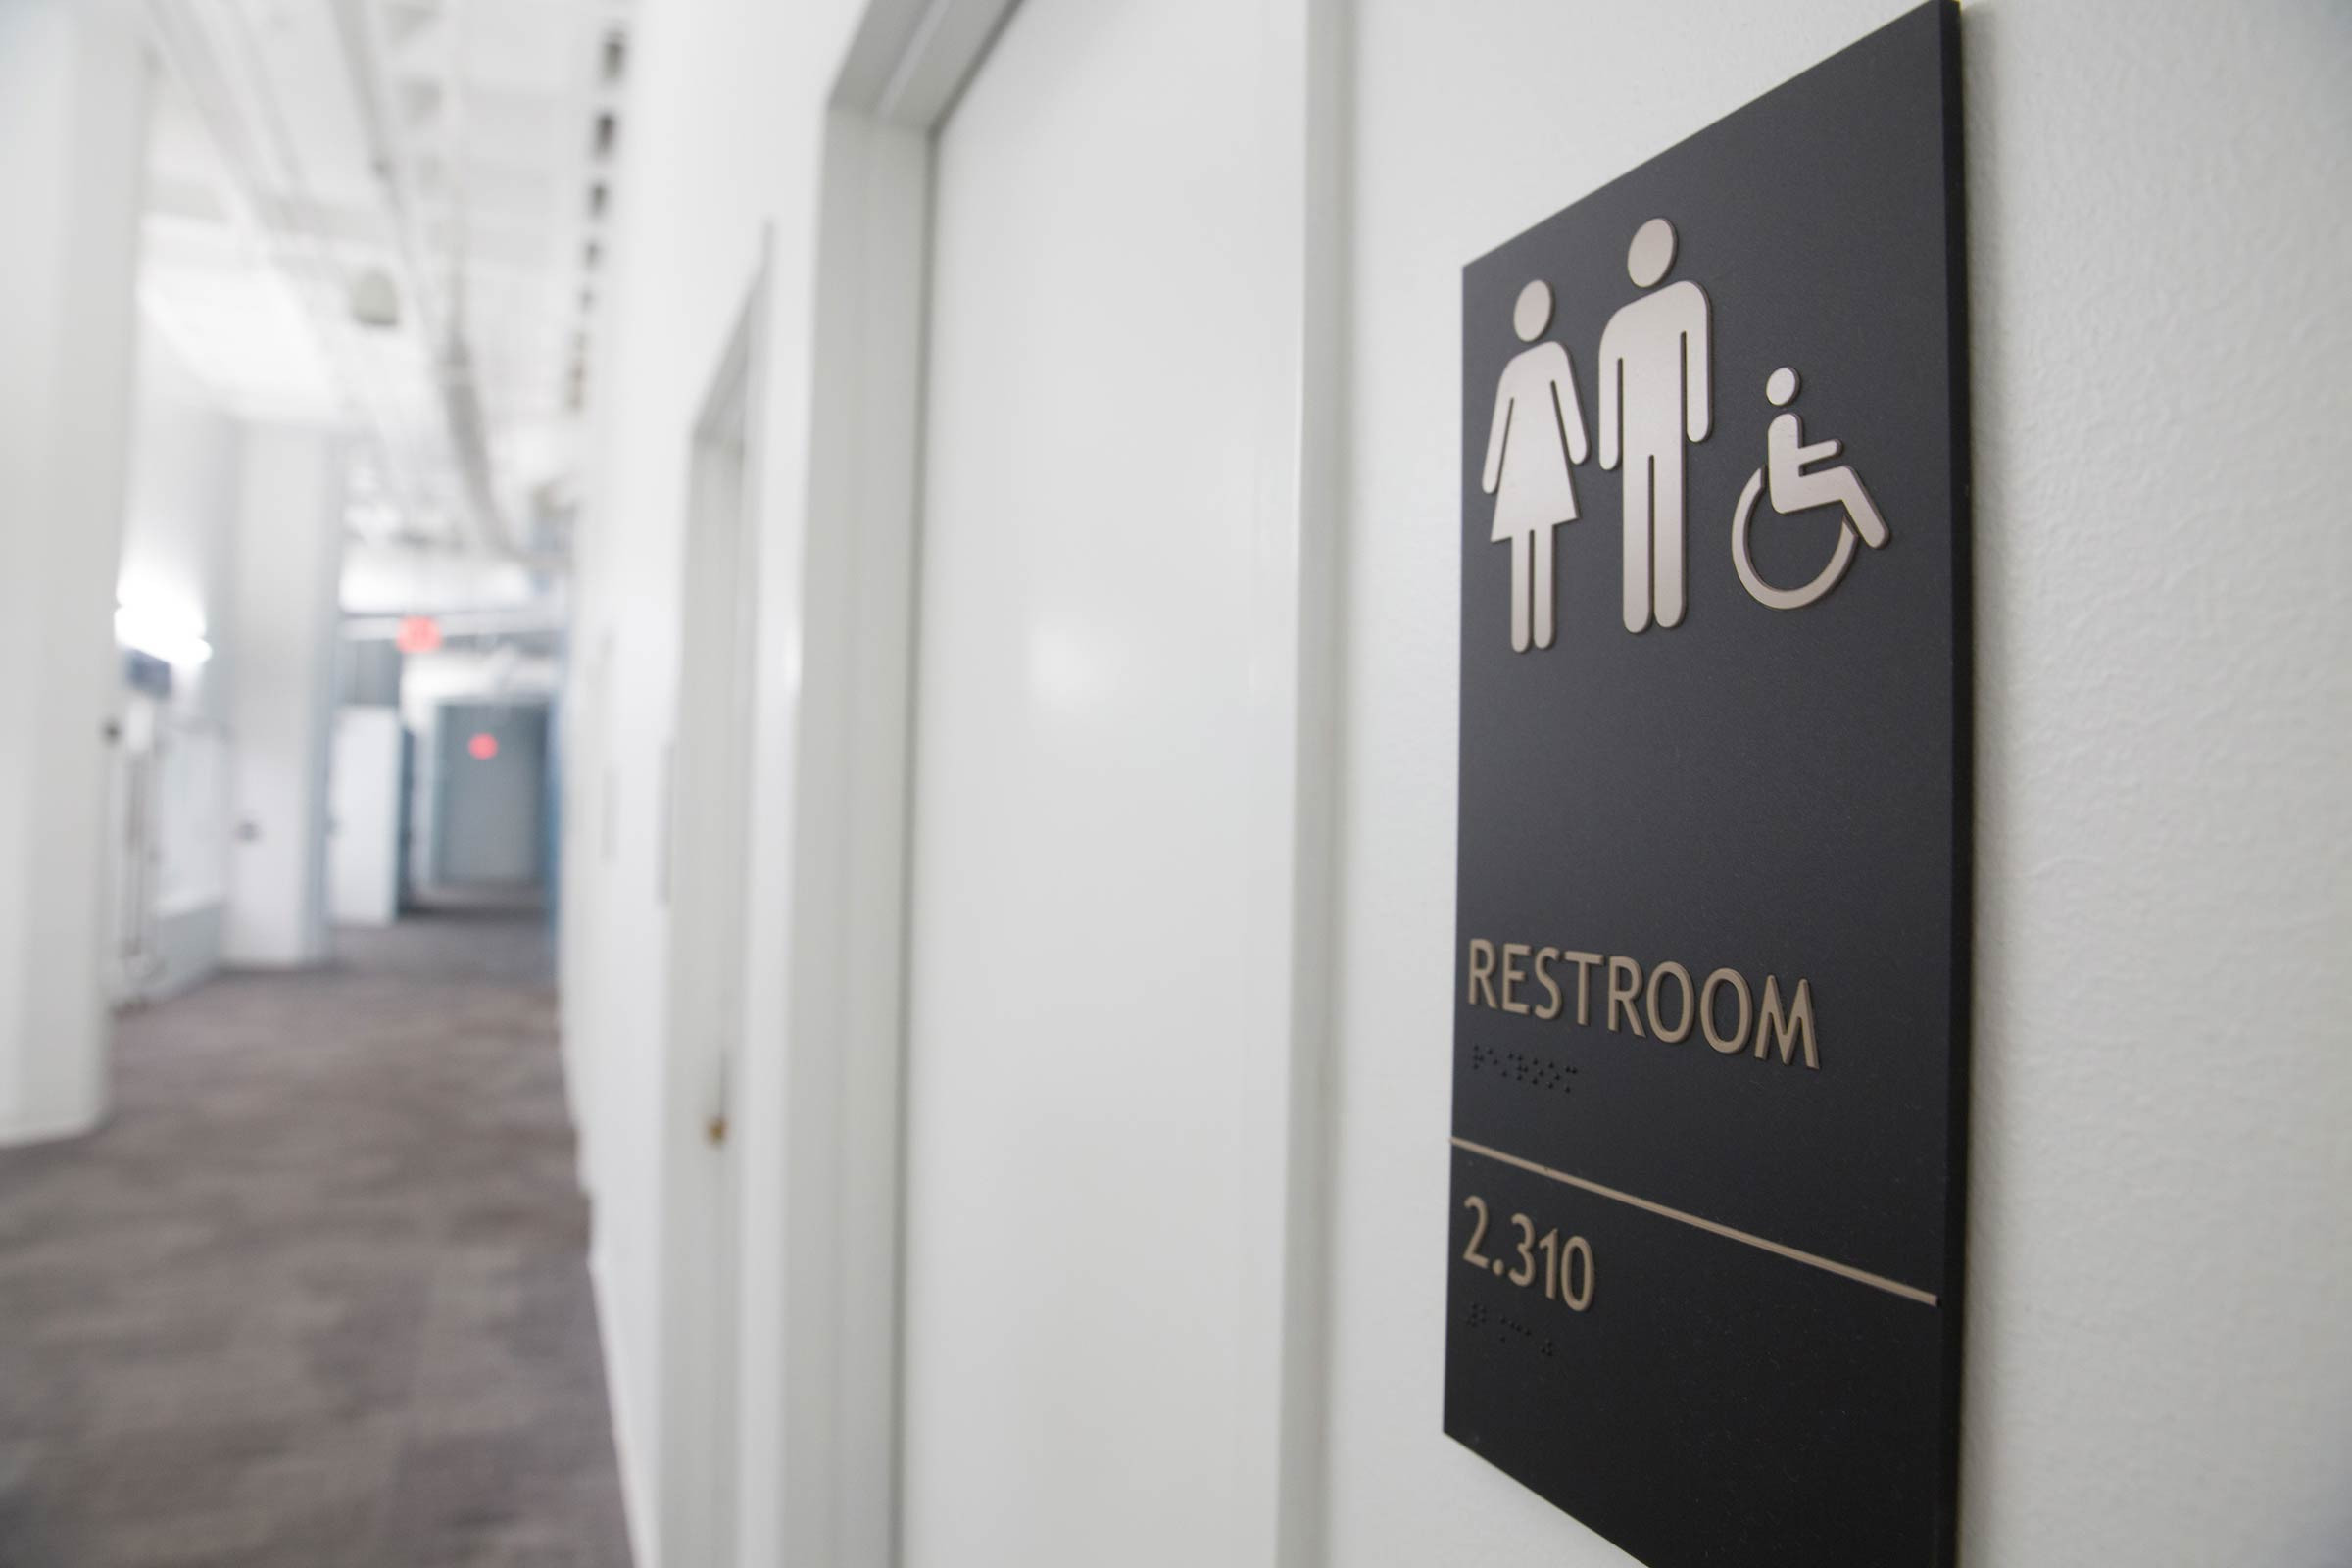 Best ideas about Bathroom Bill Texas . Save or Pin Here's what the Texas bathroom bill means in plain English Now.